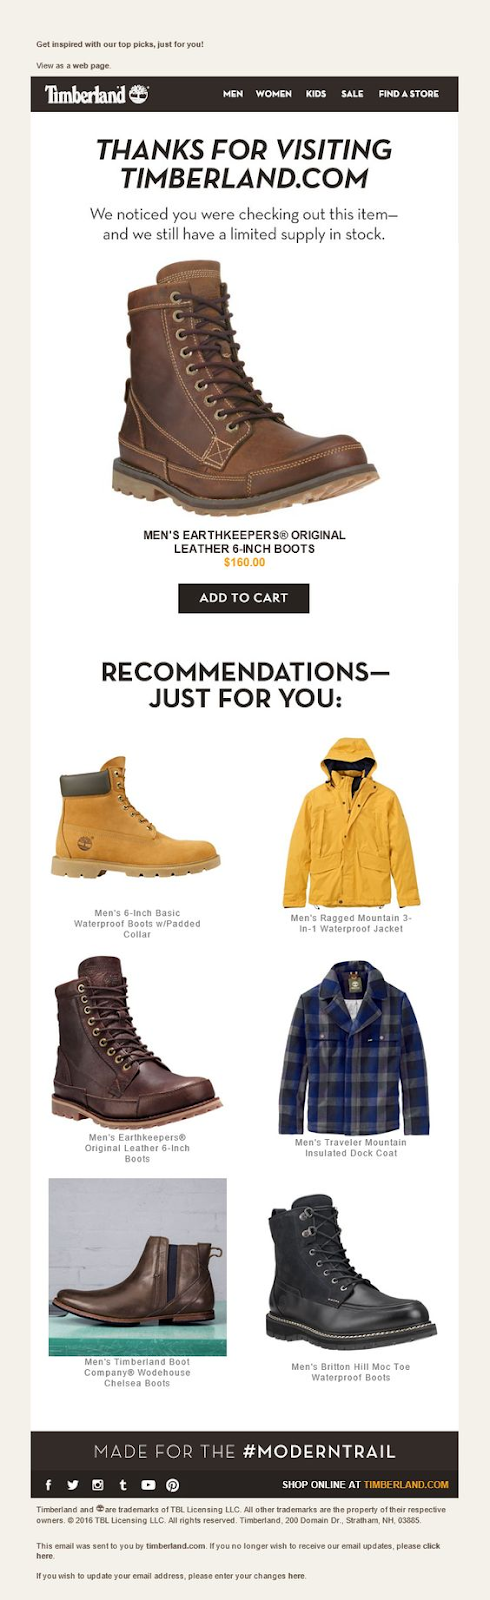 example of an browse abandonment email that reminds users of where they left off